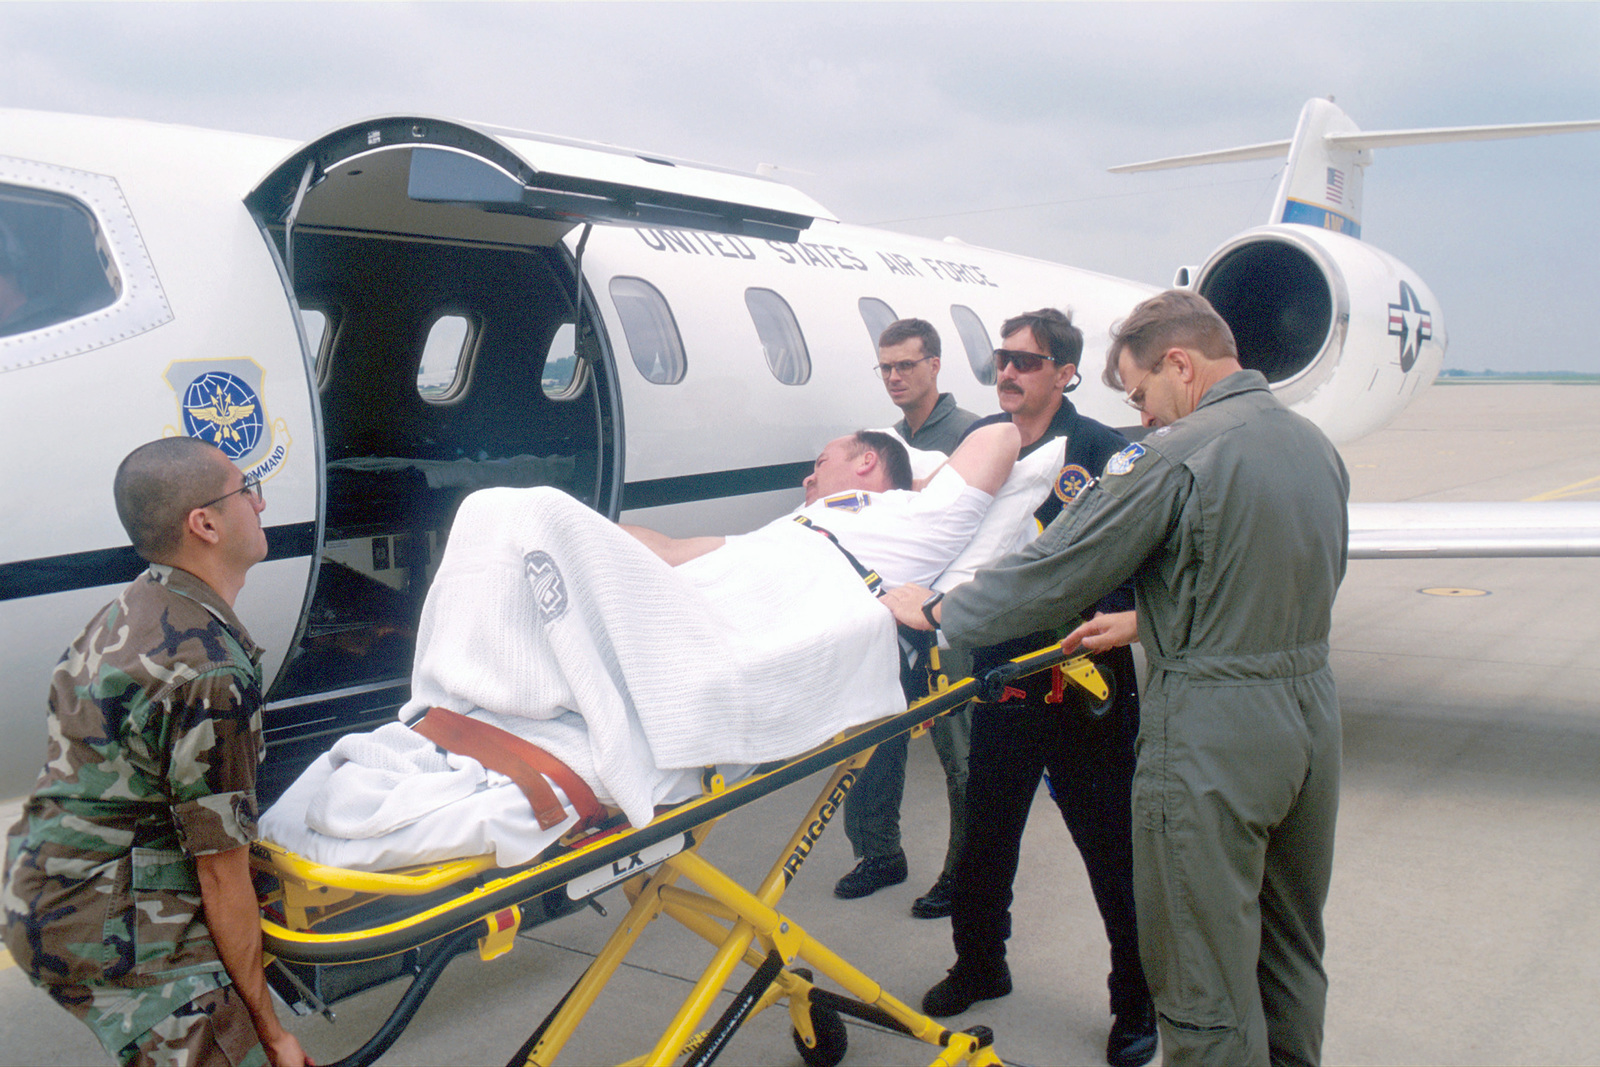 Aircrew and emergency medical technicians load Allen aboard the C-21 at Fort Campbell, Kentucky. Sergeant First Class Michael Allen was injured during paratrooping duty. The patient, Allen, was transferred to Walter Reed Medical Center in Washington, D.C. AIRMAN Magazine's Article Air Care by Technical Sergeant Pat McKenna describes the airborne ambulances mission and history in celebration of the 50th anniversary of medical services. (AIRMAN Magazine/July 1999)